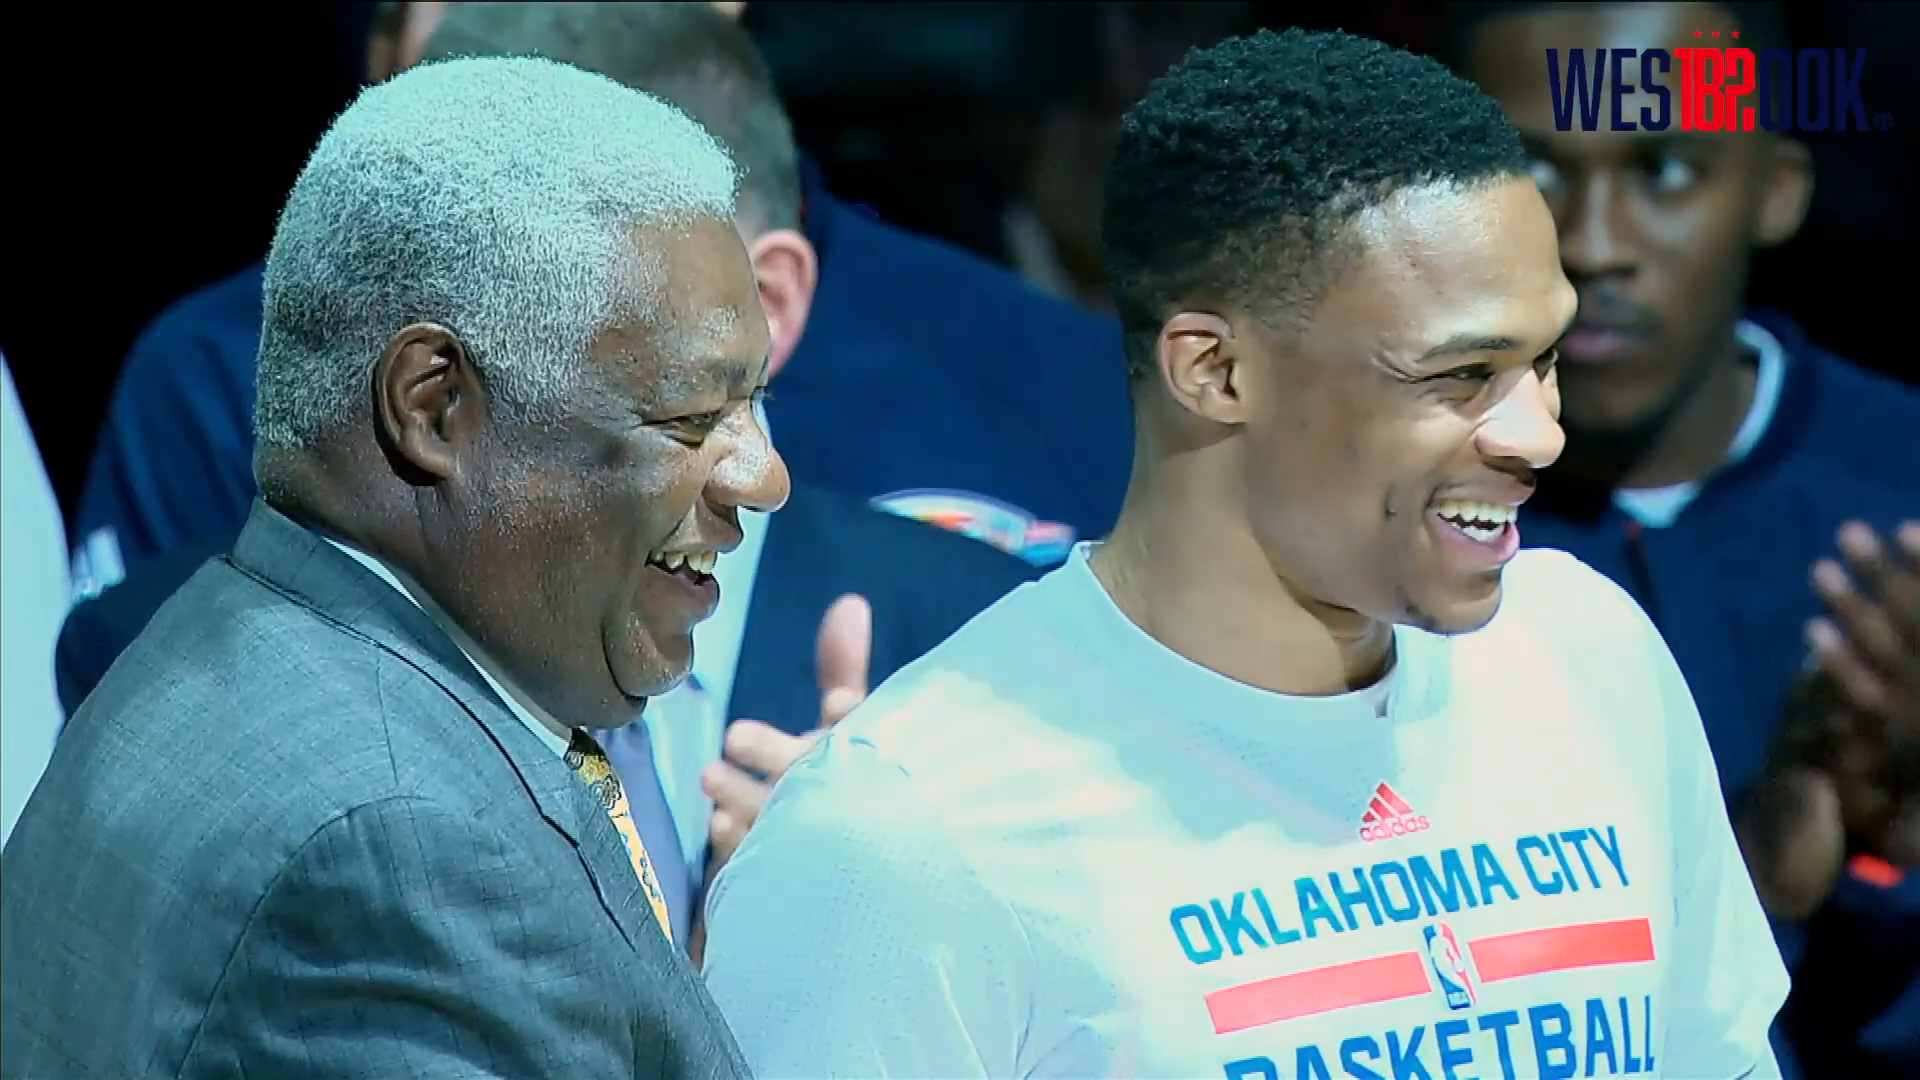 Congratulations to Russell Westbrook on breaking the all-time triple-double record